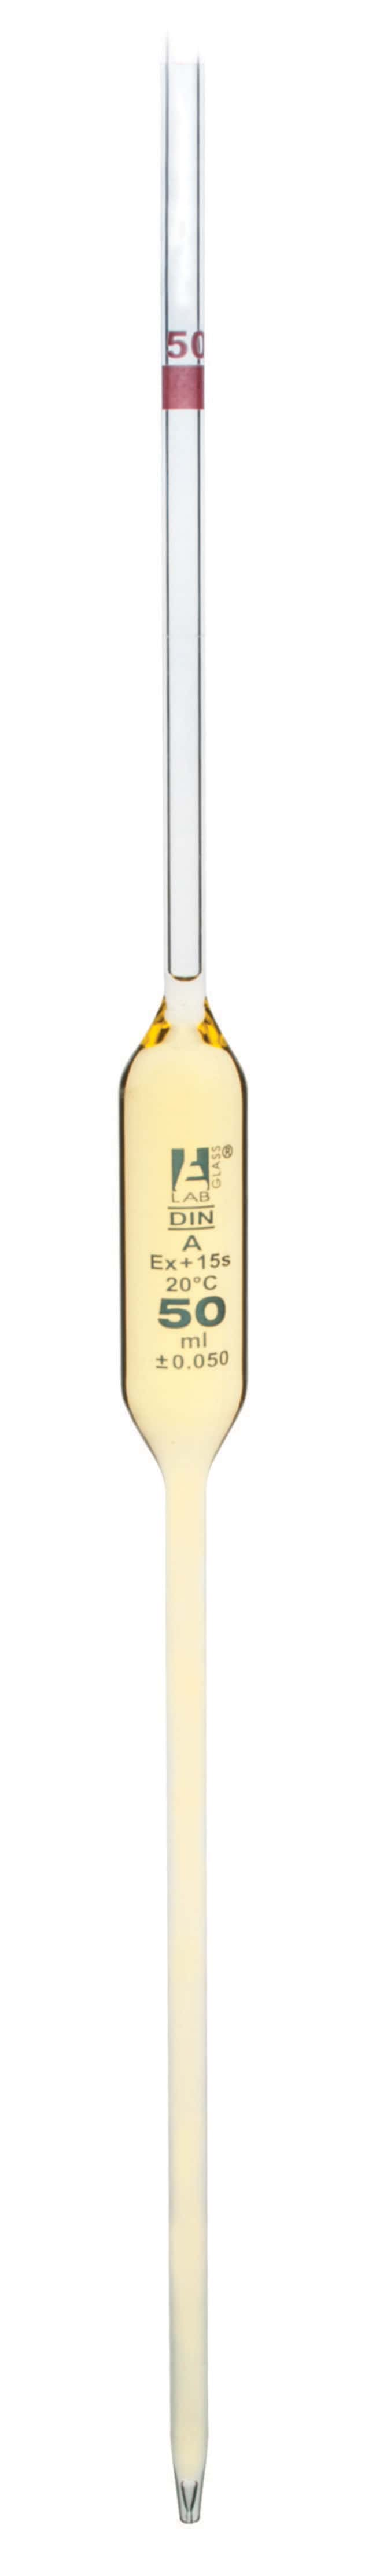 Eisco Class A Volumetric Pipet, Borosilicate Glass:Pipets, Pipettes and